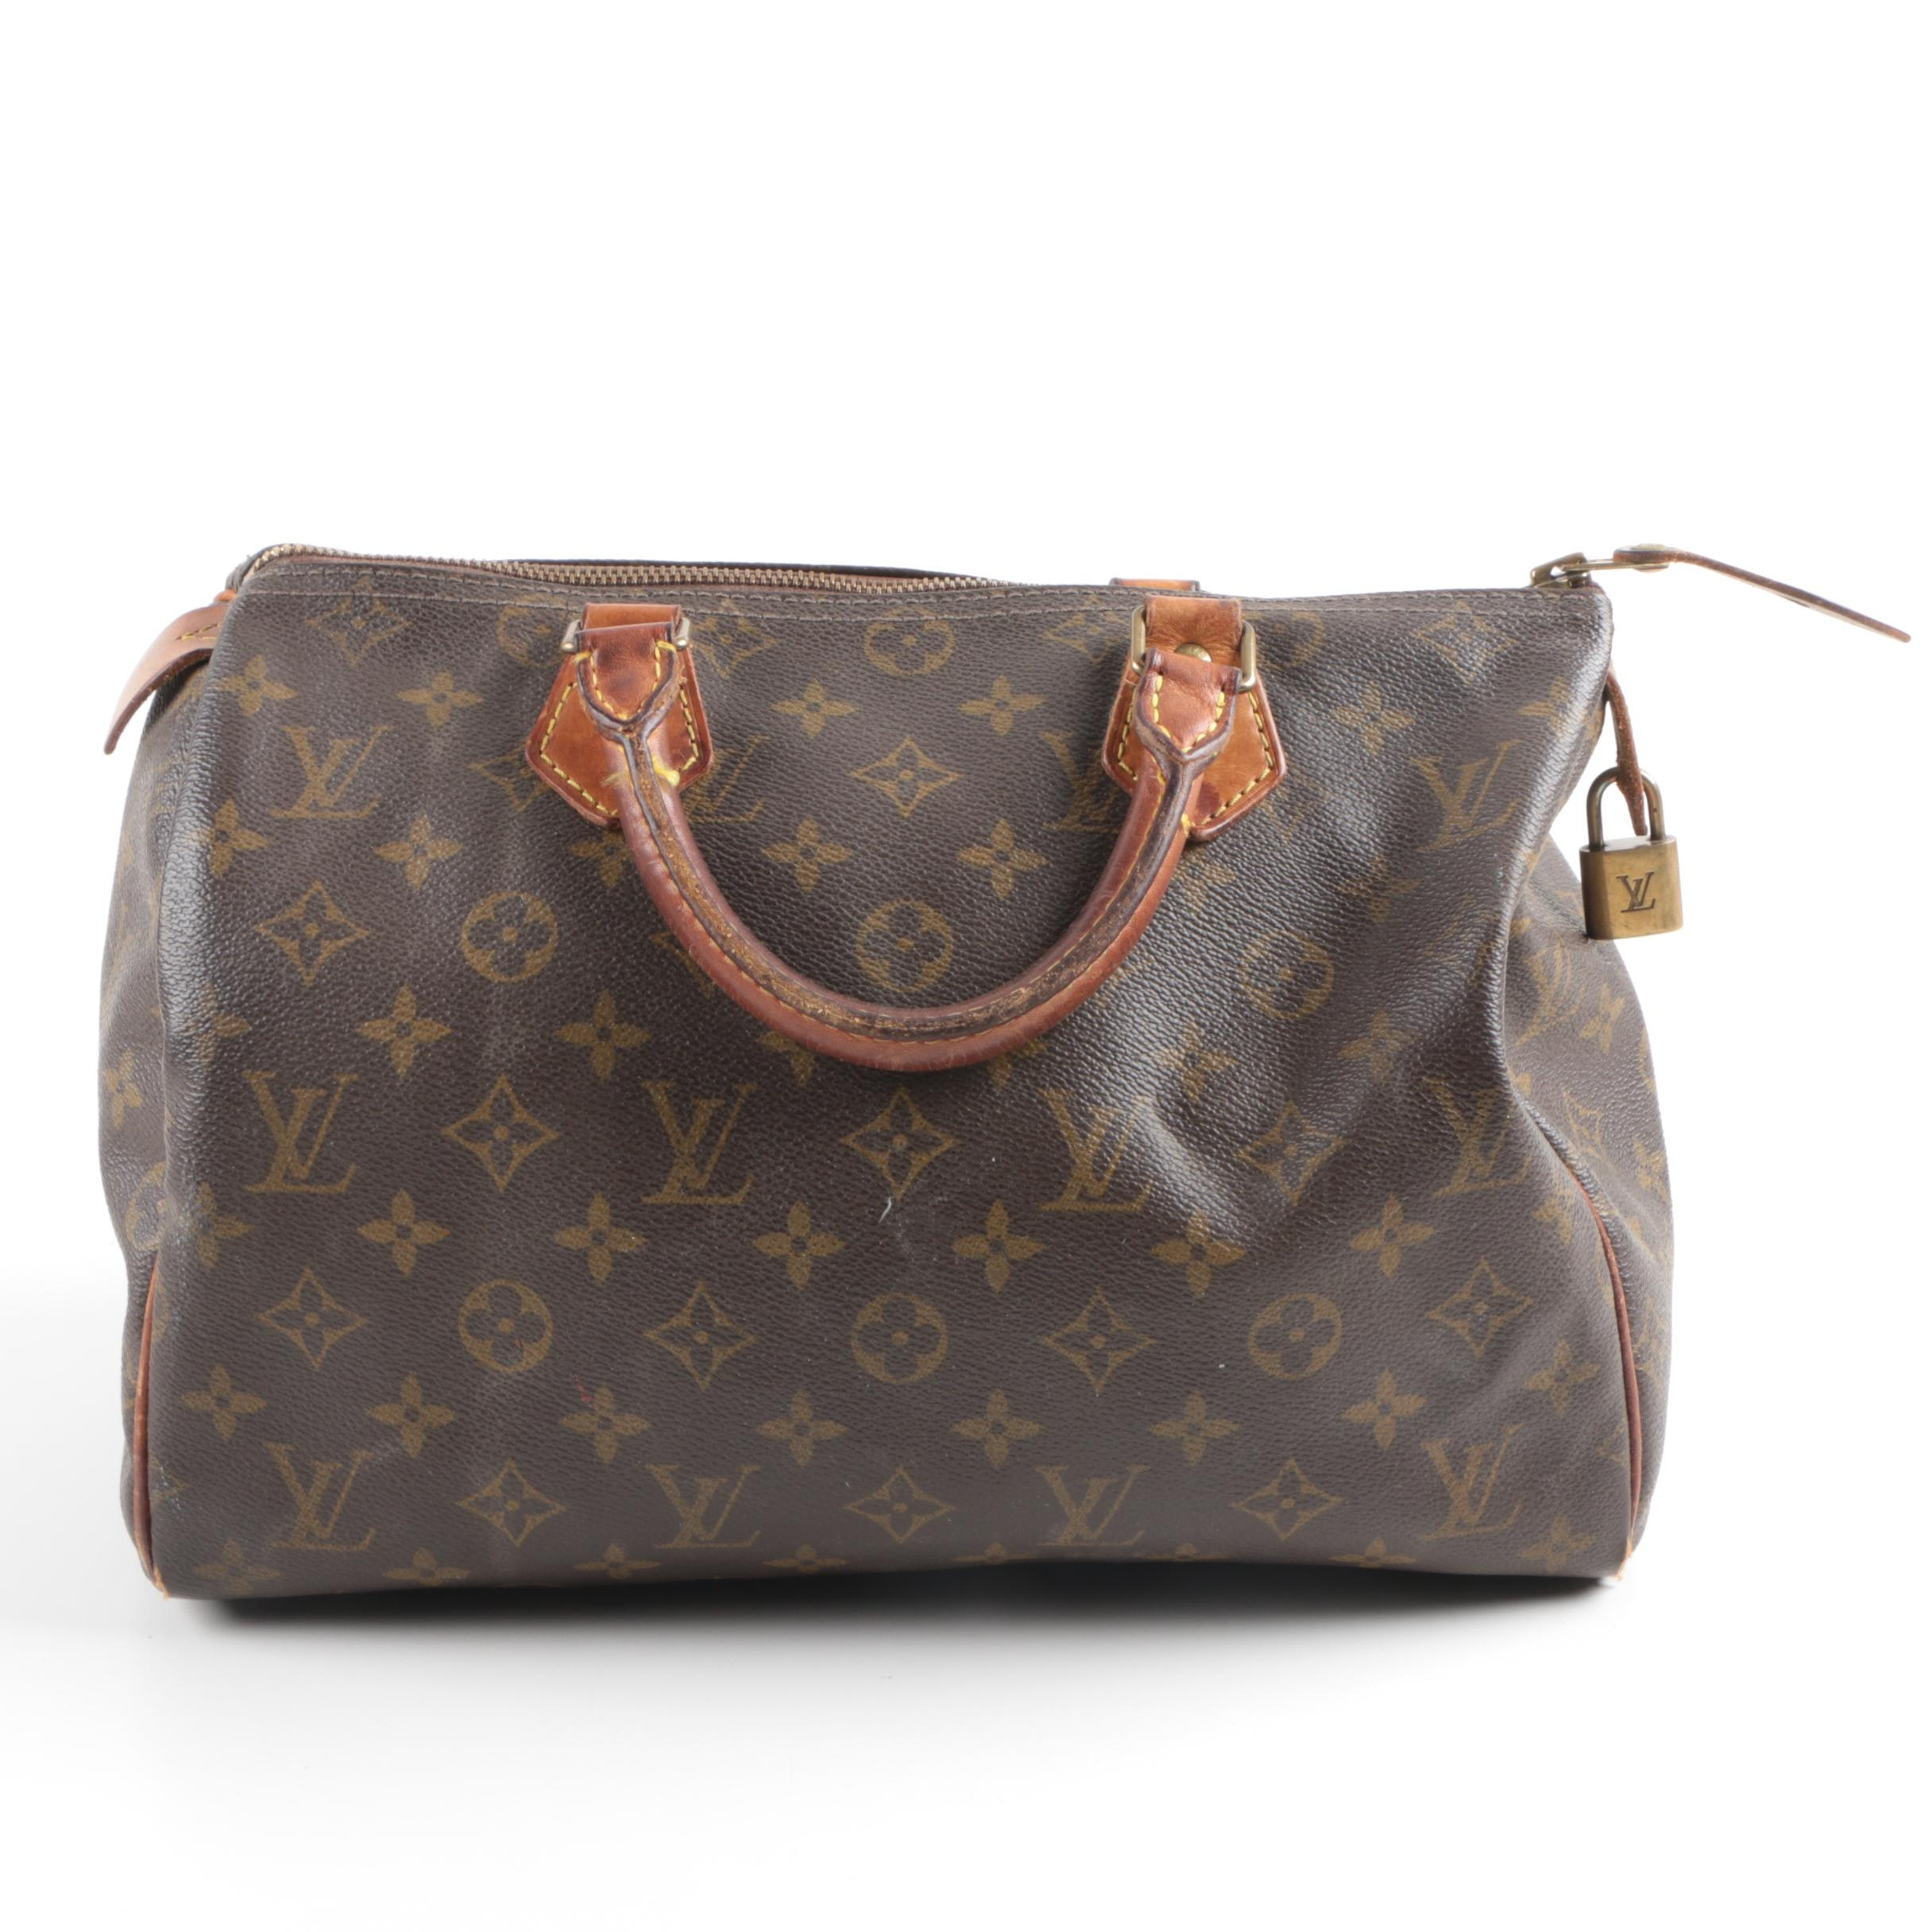 vintage louis vuitton speedy date code Louis vuitton official canada website - discover our latest speedy 25 nm mng collection for women, exclusively on louisvuittoncom and in louis vuitton stores.